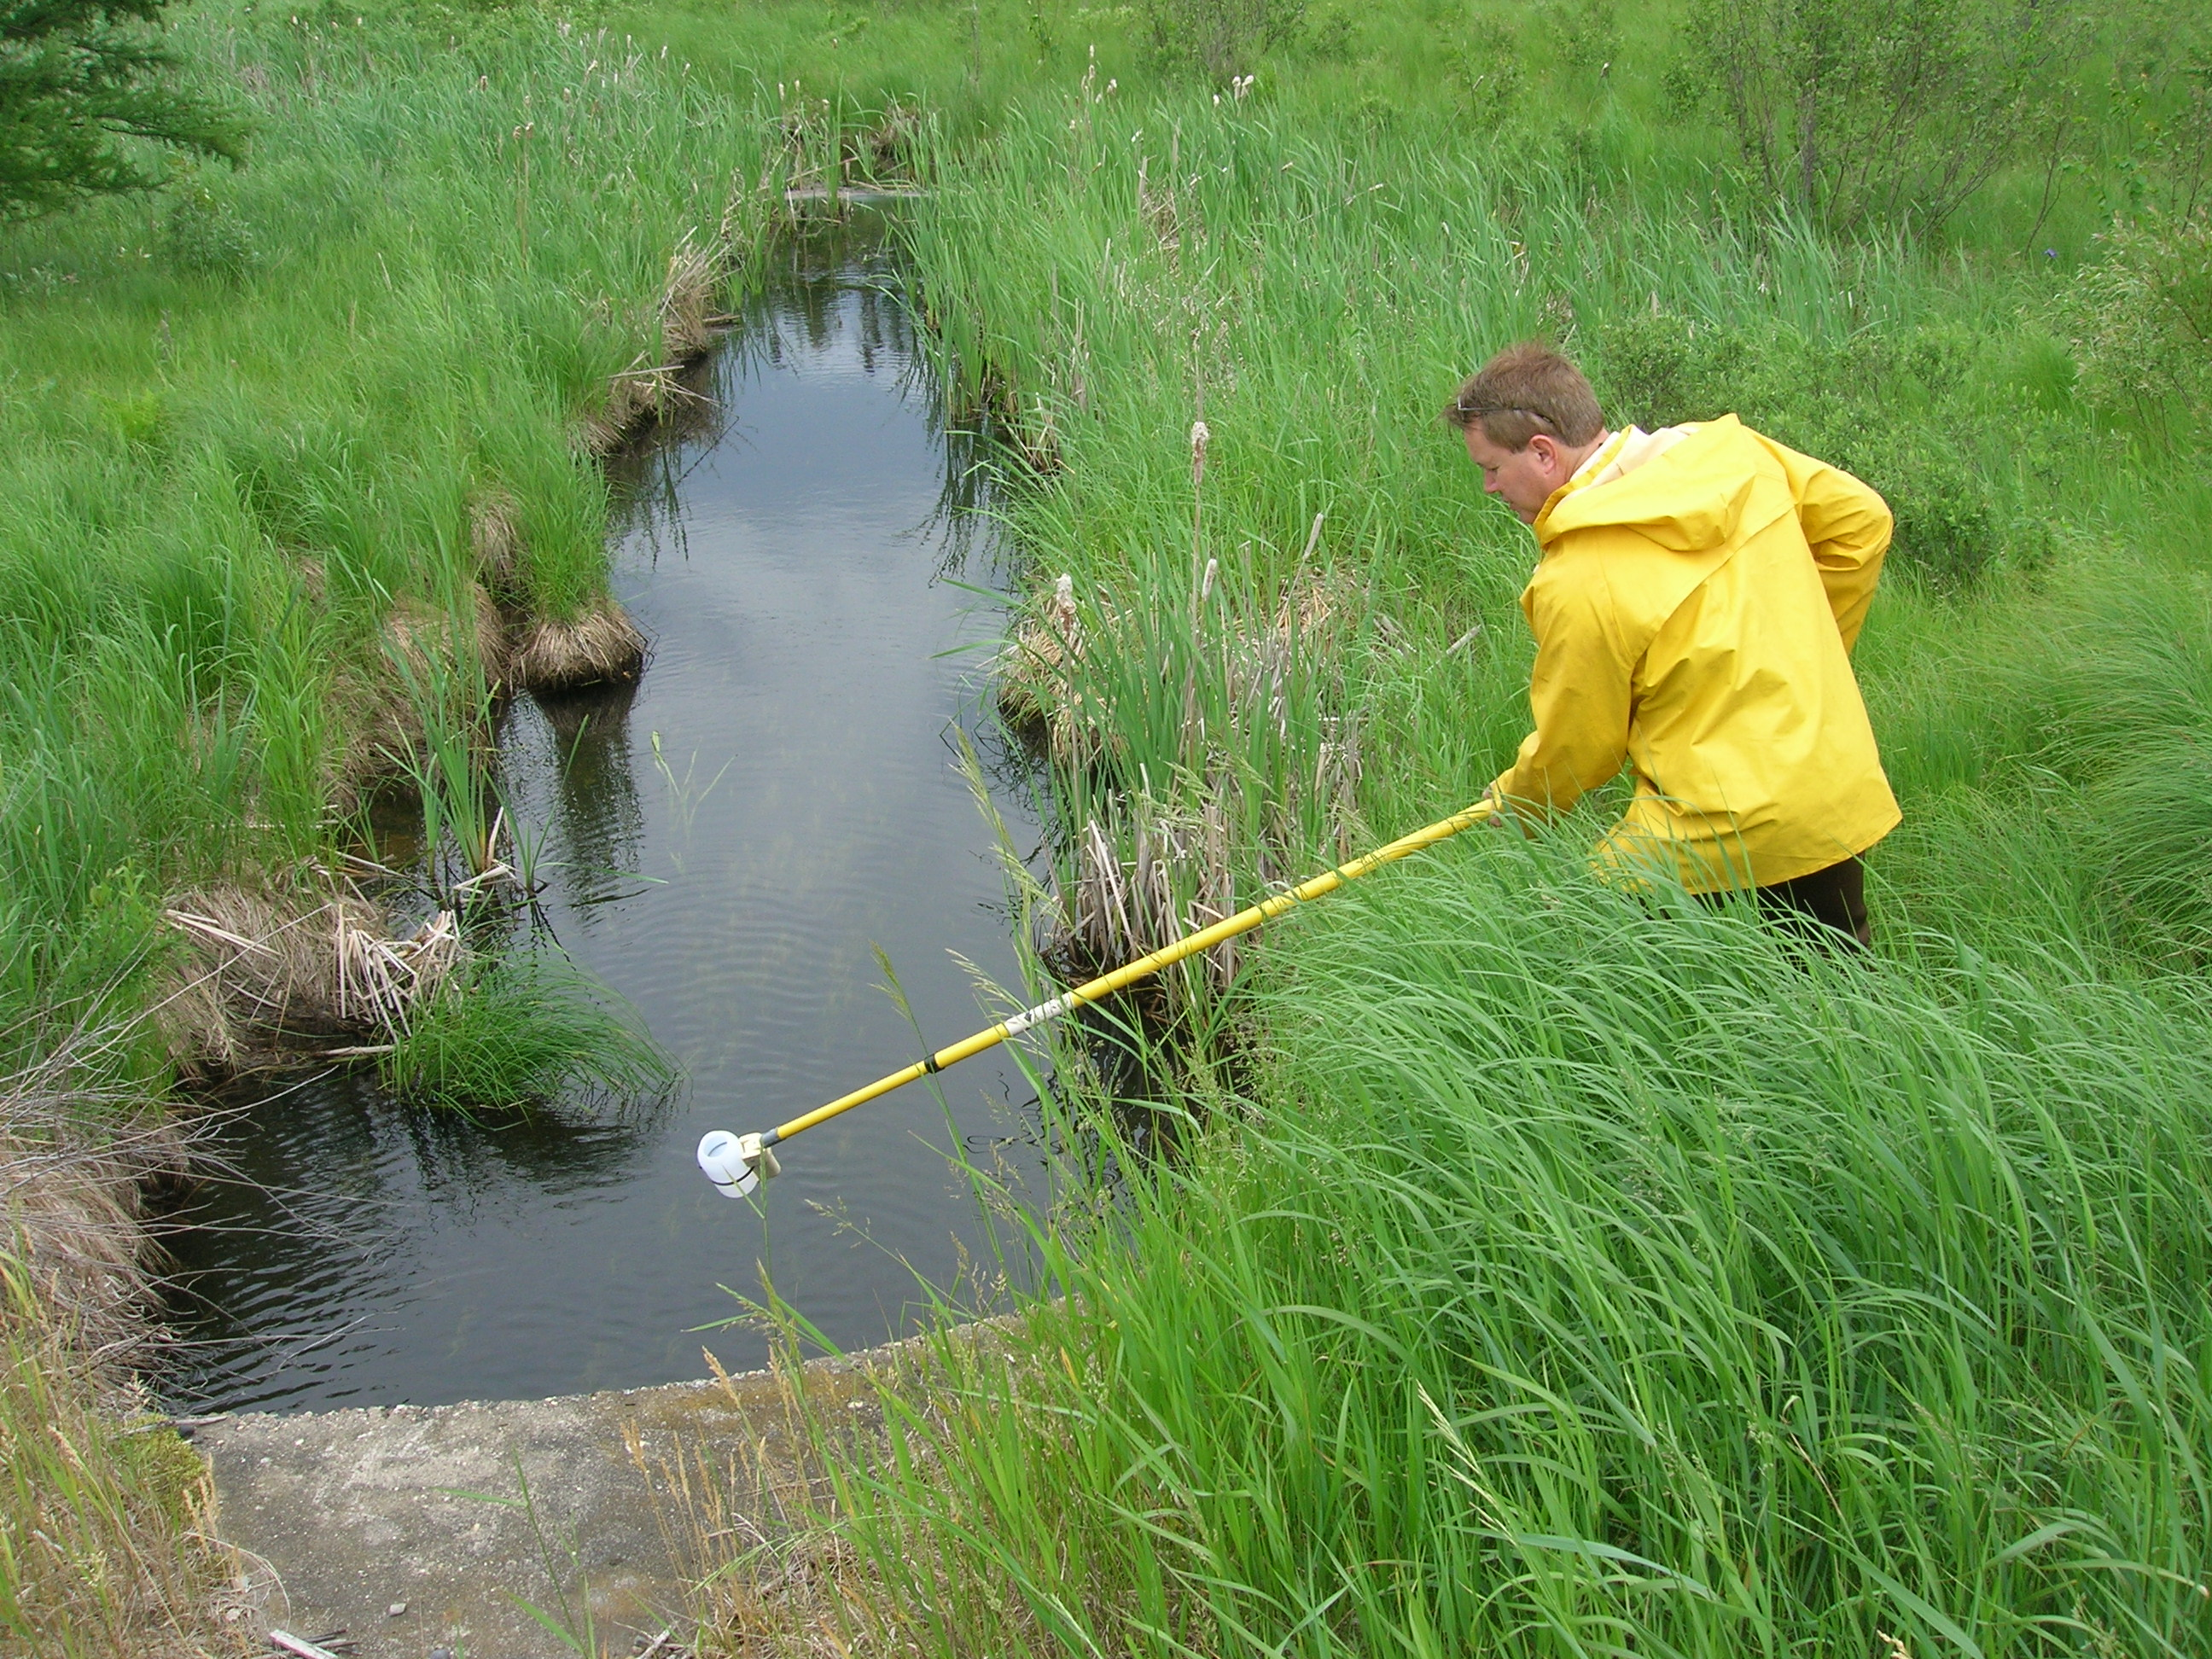 Worker sampling pond water